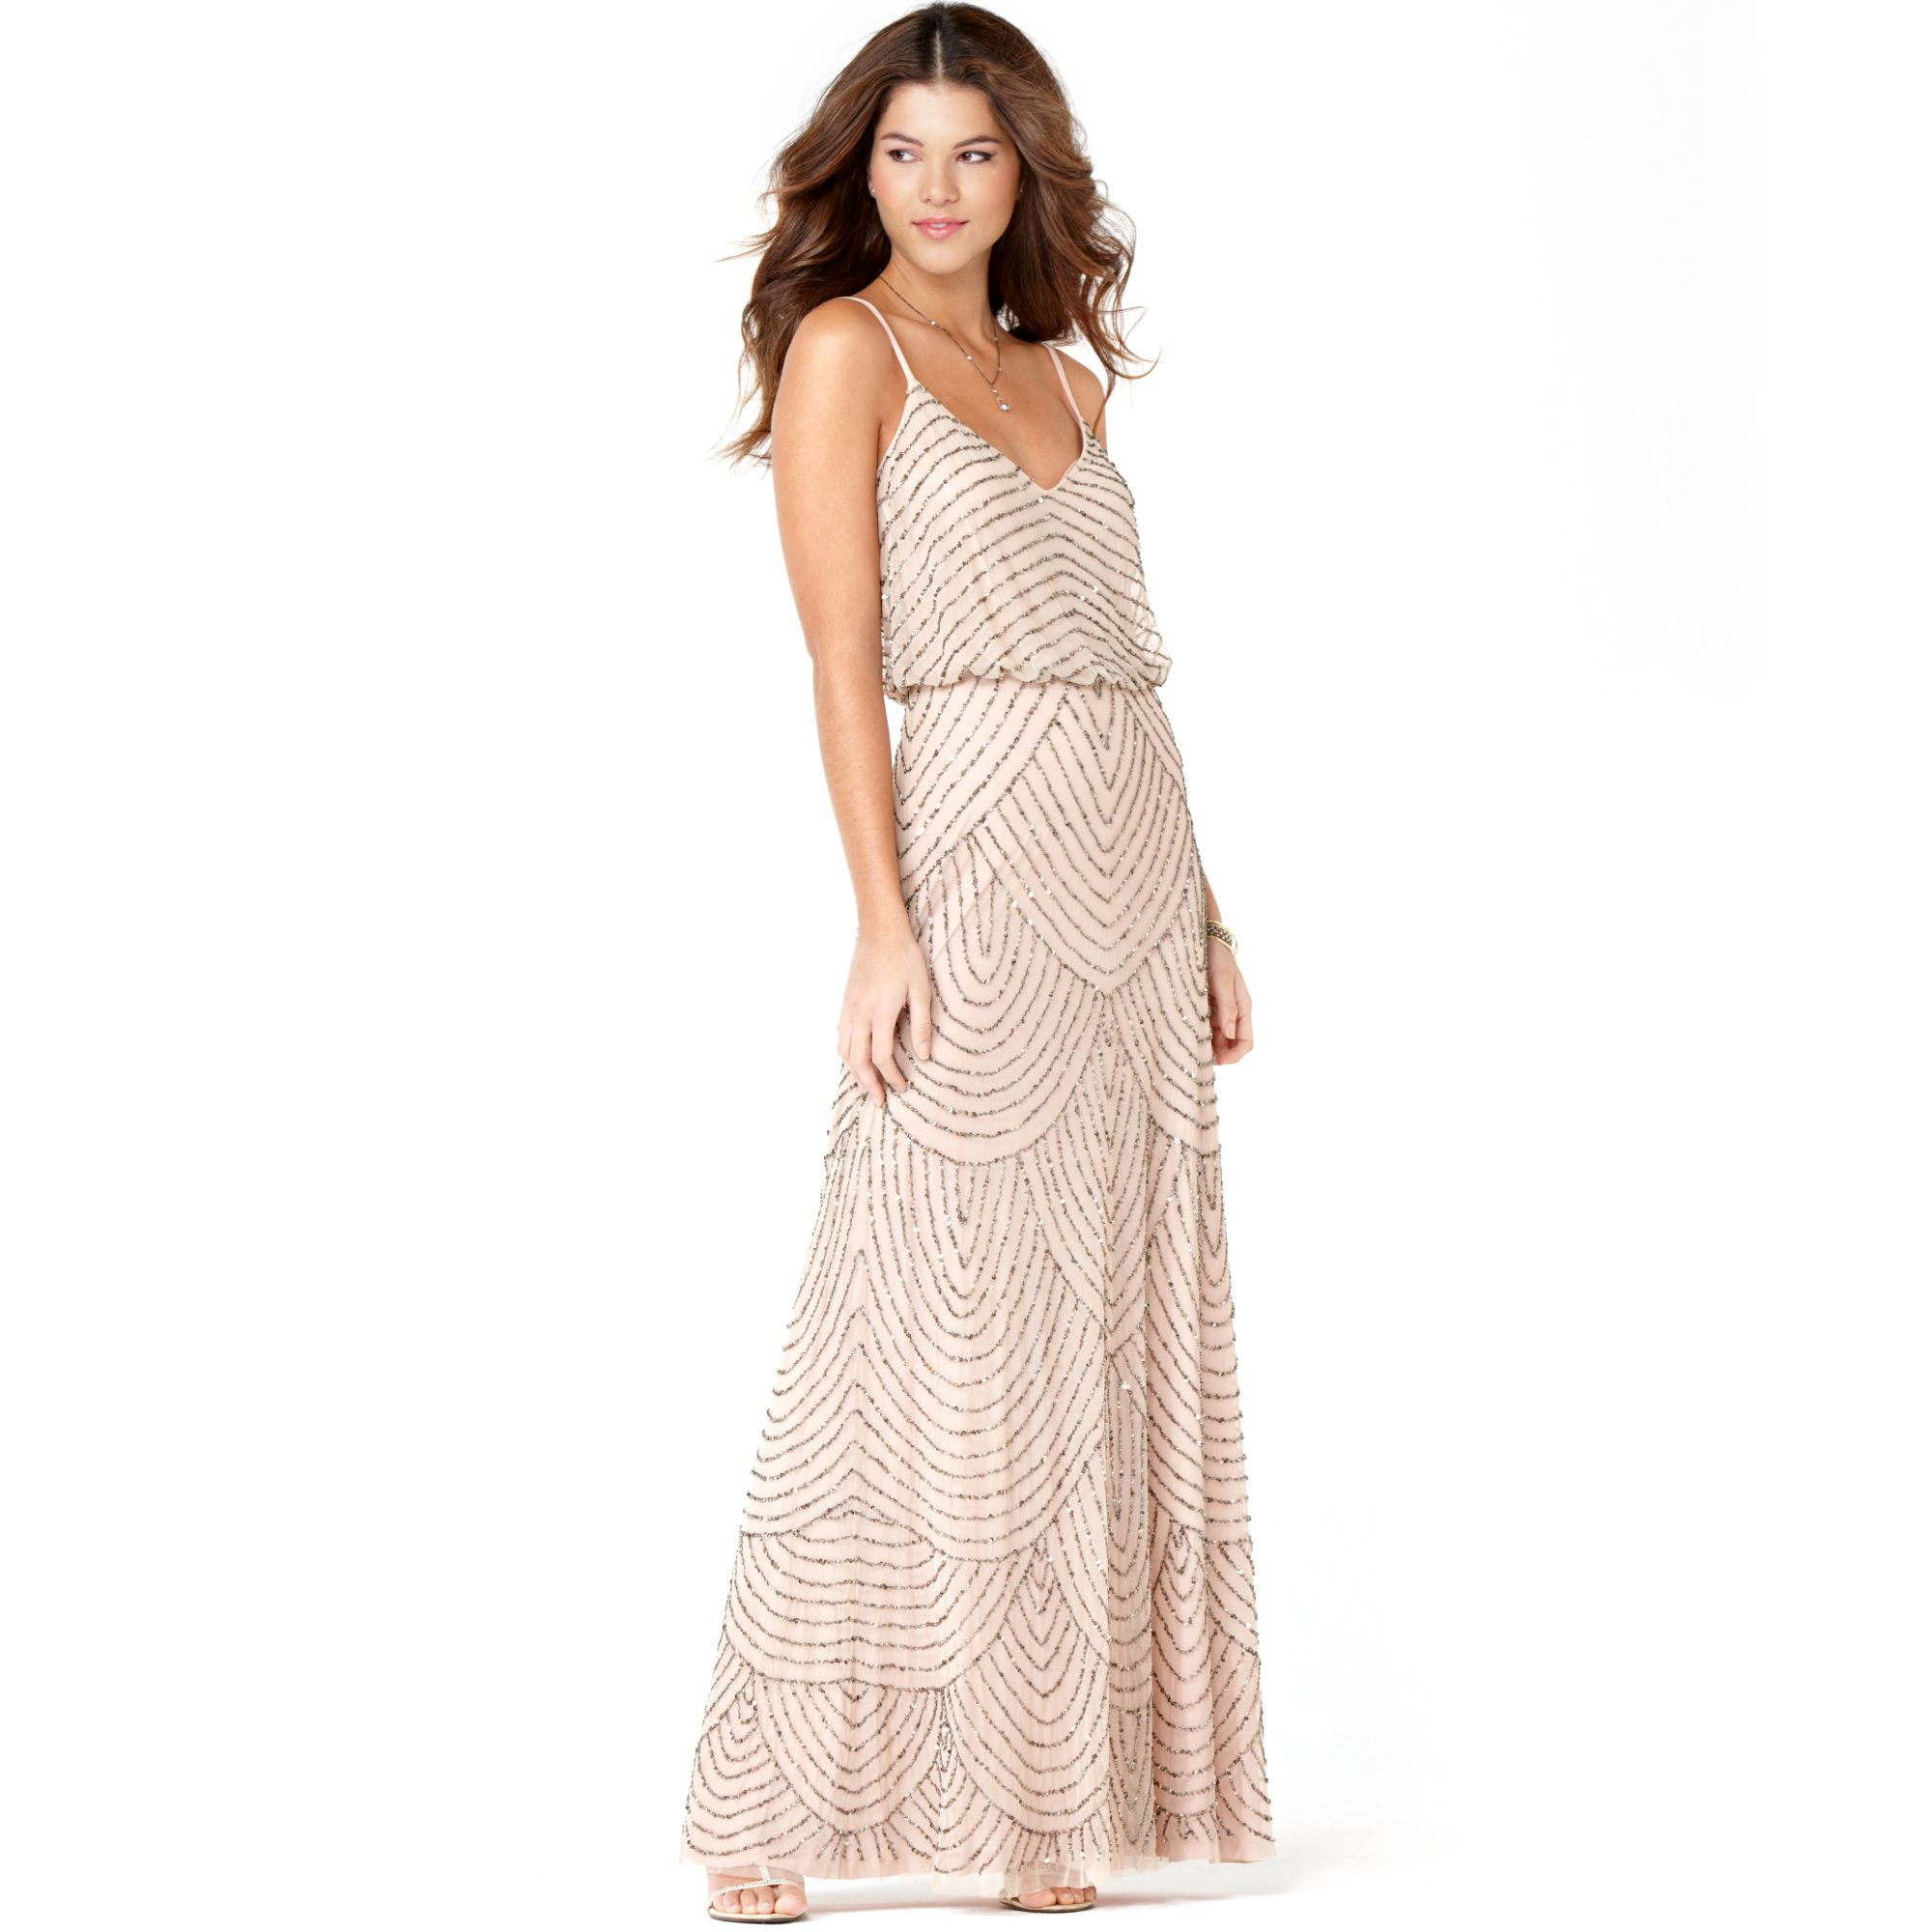 Adrianna Papell Spaghetti Strap Beaded Blouson Gown In